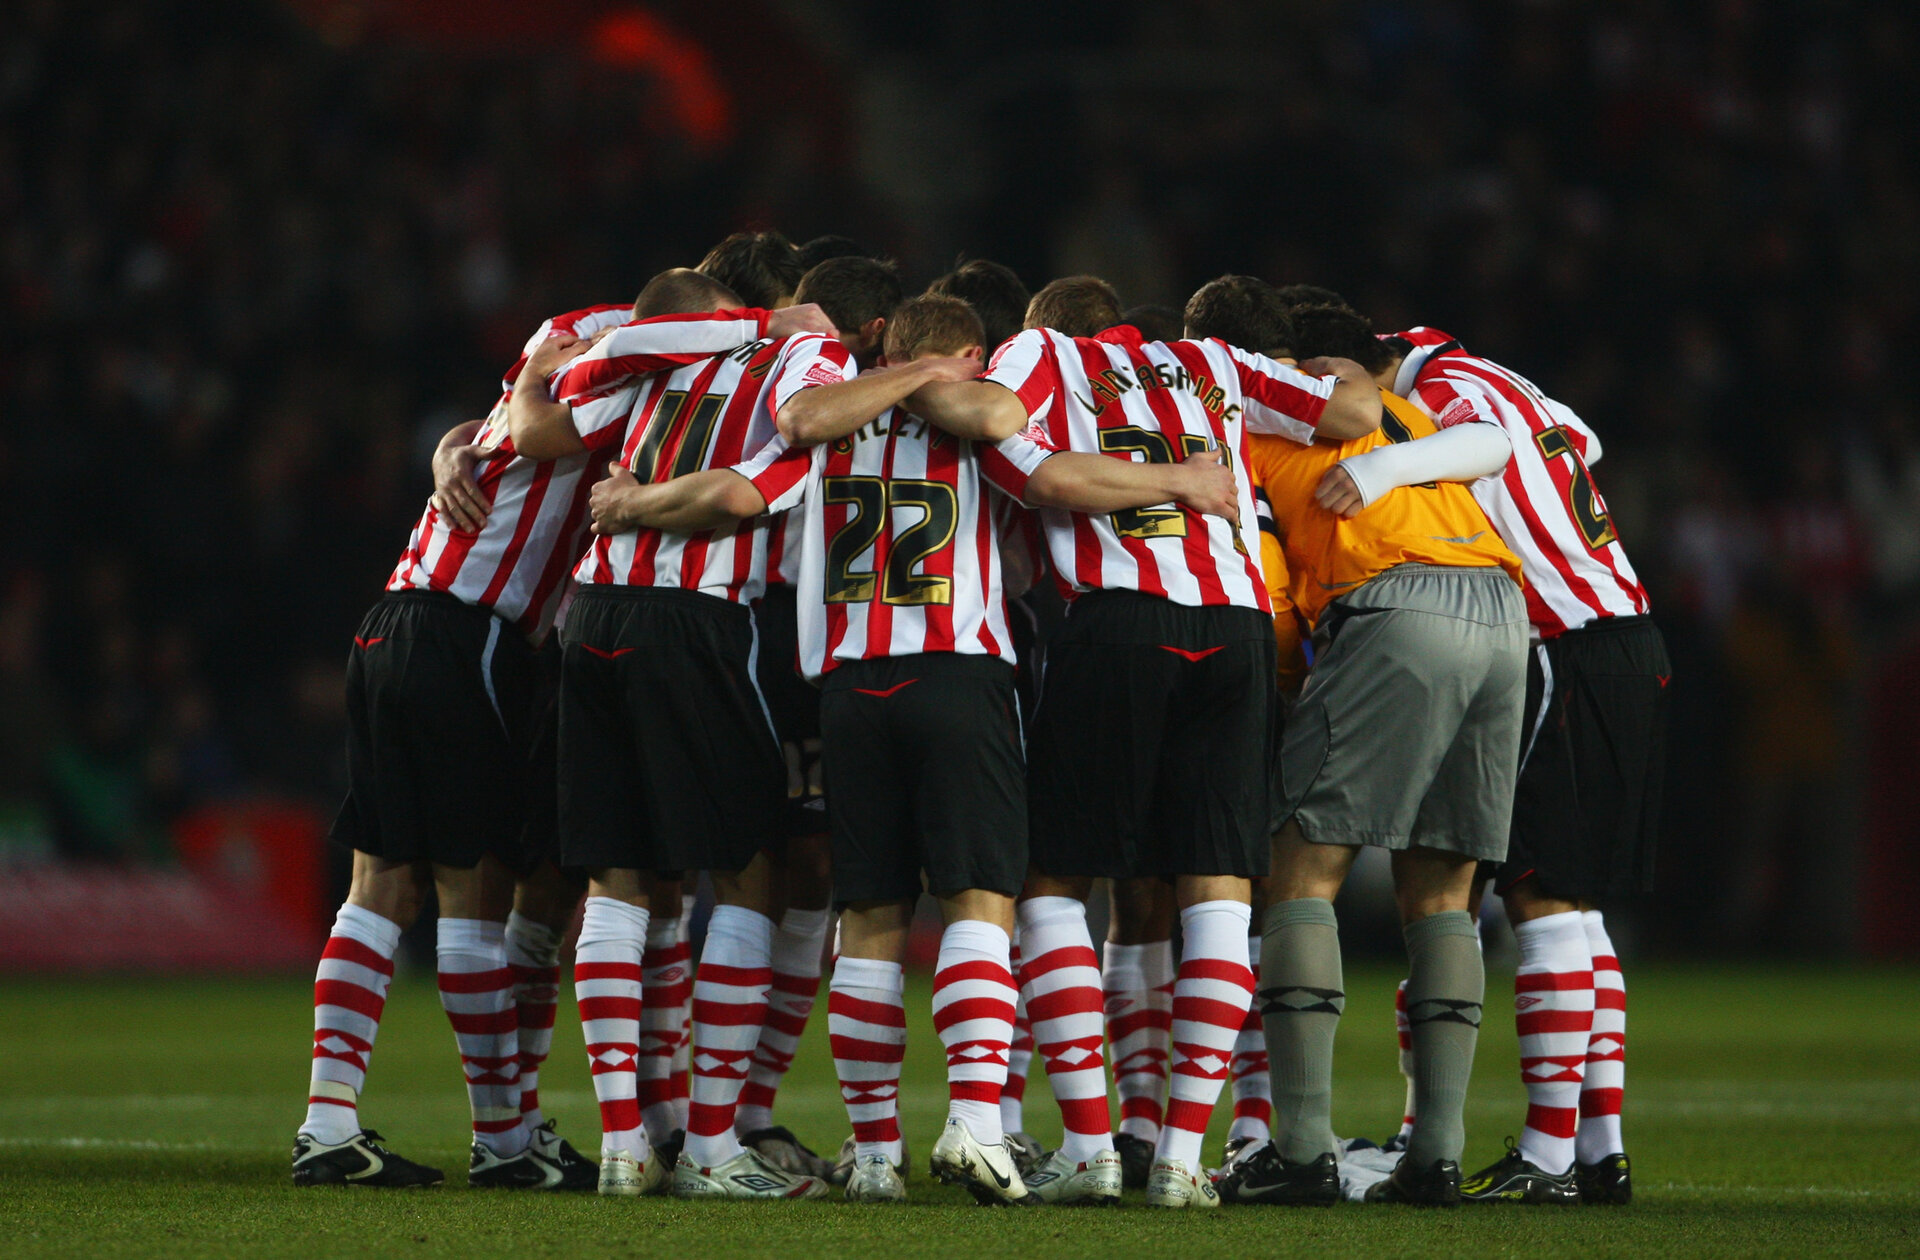 SOUTHAMPTON, UNITED KINGDOM - JANUARY 04:  Southampton players huddle prior to the FA Cup Sponsored by E.on 3rd Round  match between Southampton and Manchester United at St Mary's Stadium on January 4, 2009 in Southampton, England.  (Photo by Phil Cole/Getty Images)